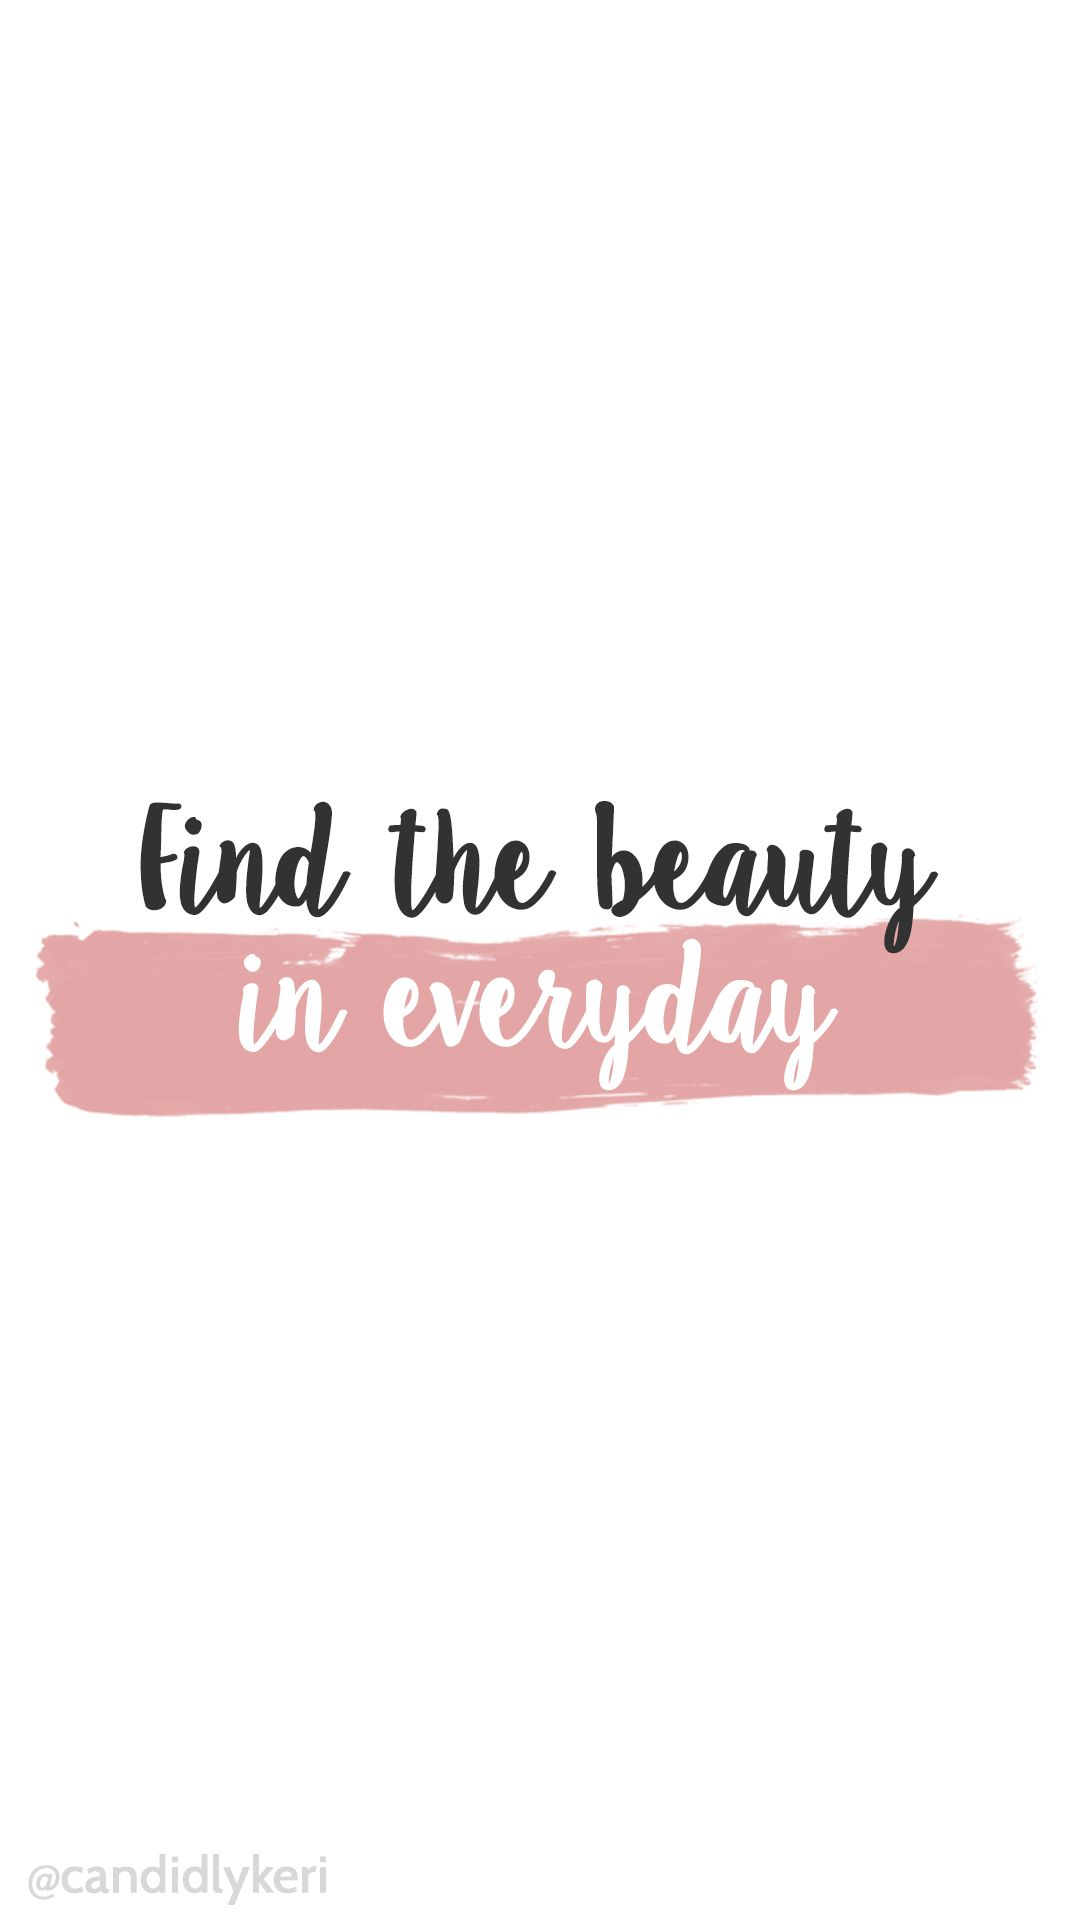 find the beauty in every day pink watercolor paint stripe background wallpaper you can download for